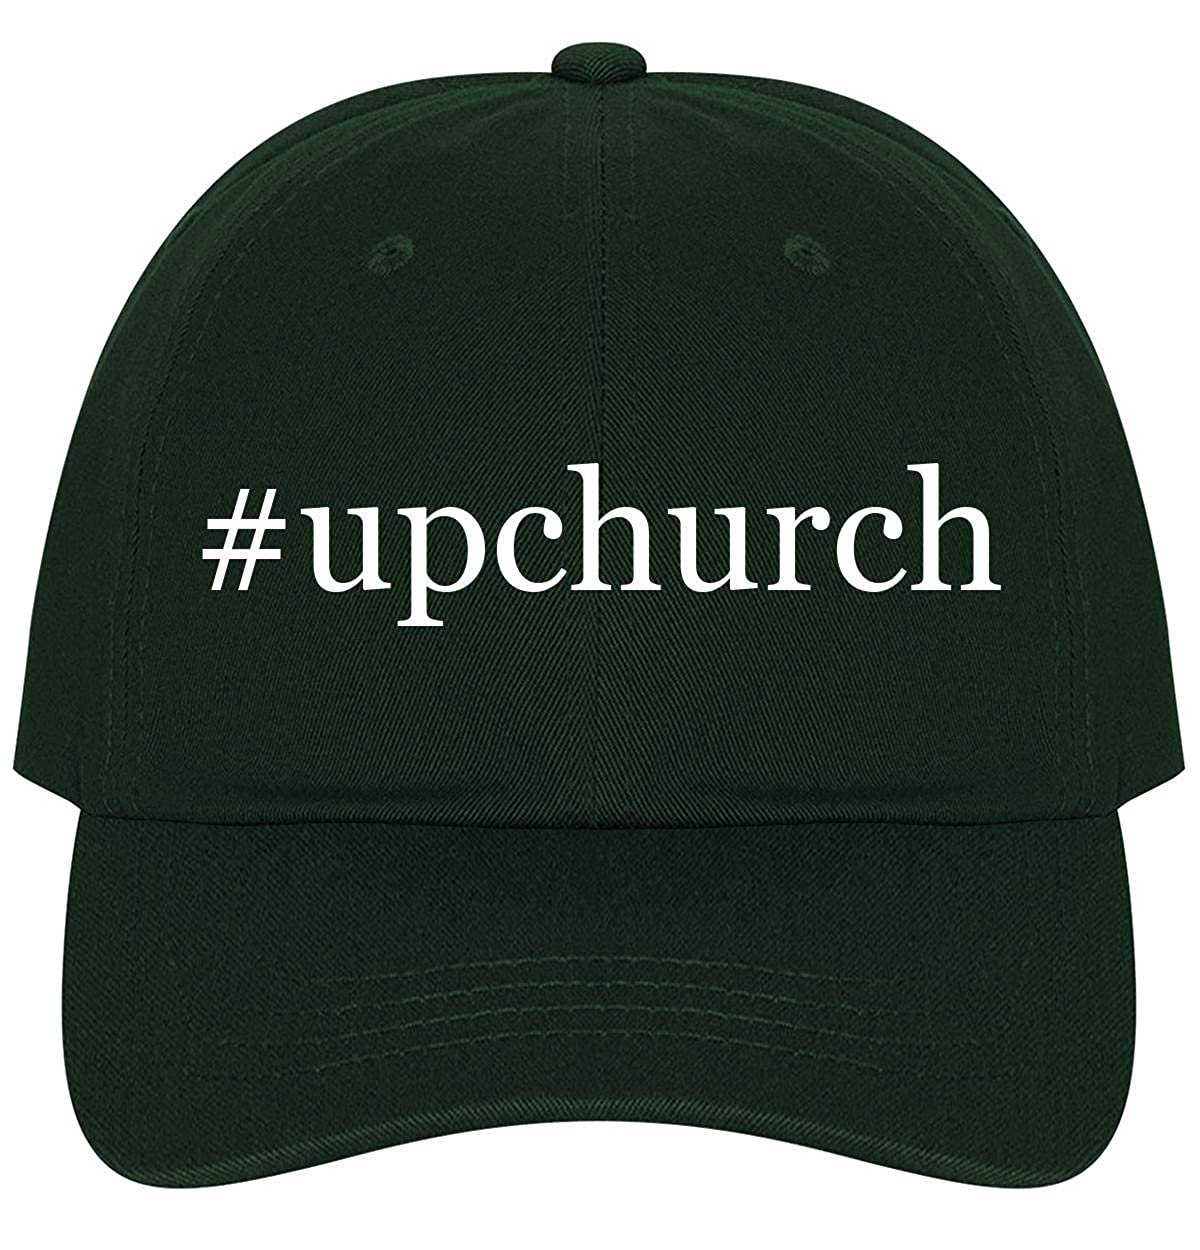 The Town Butler #Upchurch A Nice Comfortable Adjustable Hashtag Dad Hat Cap